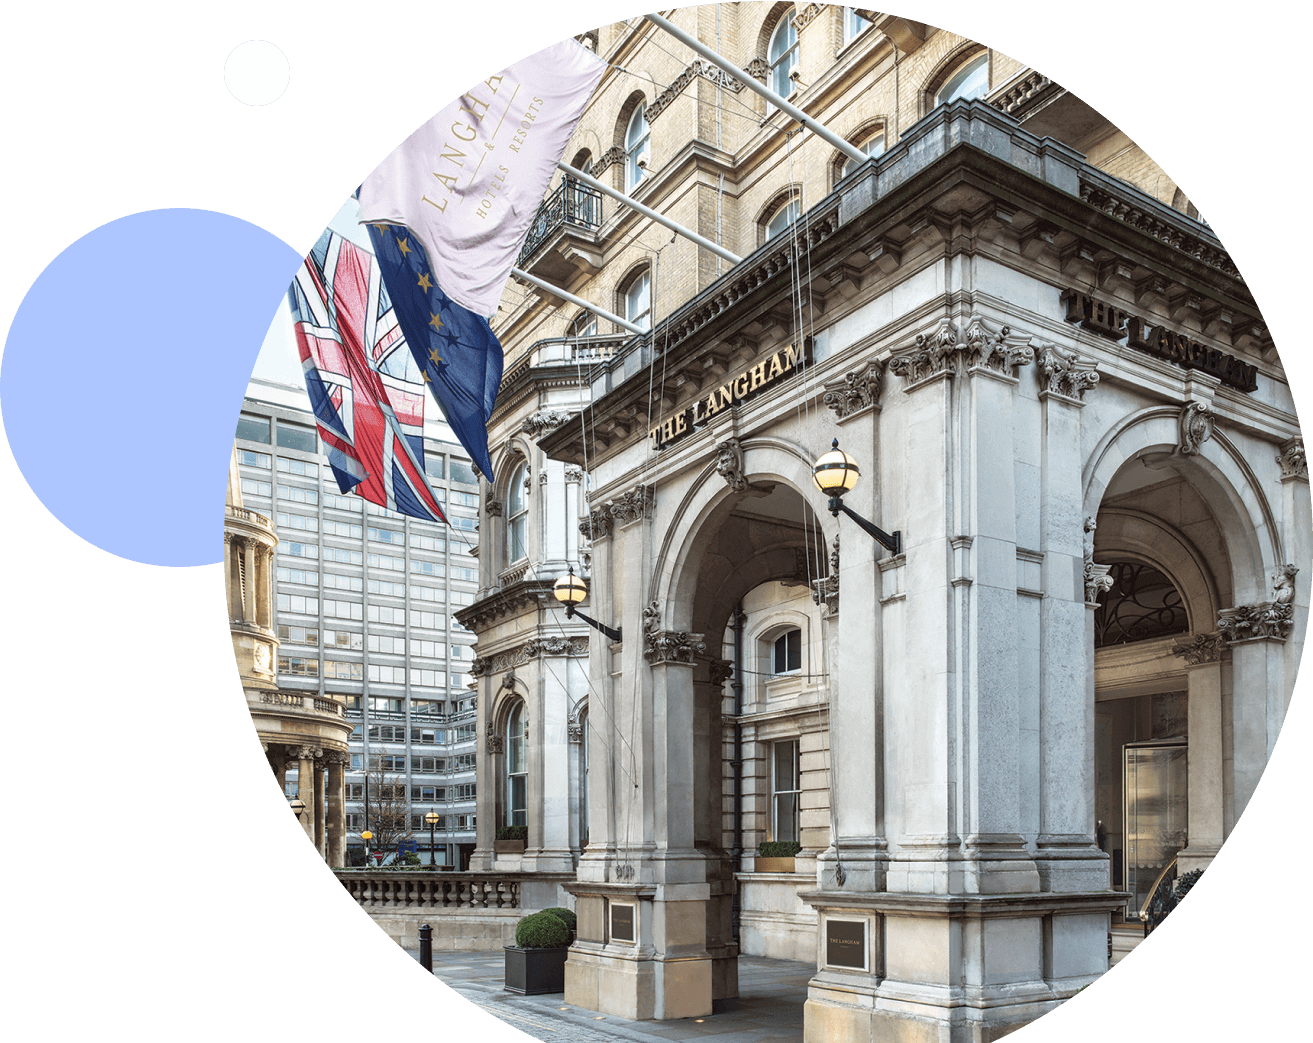 Varicent Elevate will be held at The Langham hotel in London